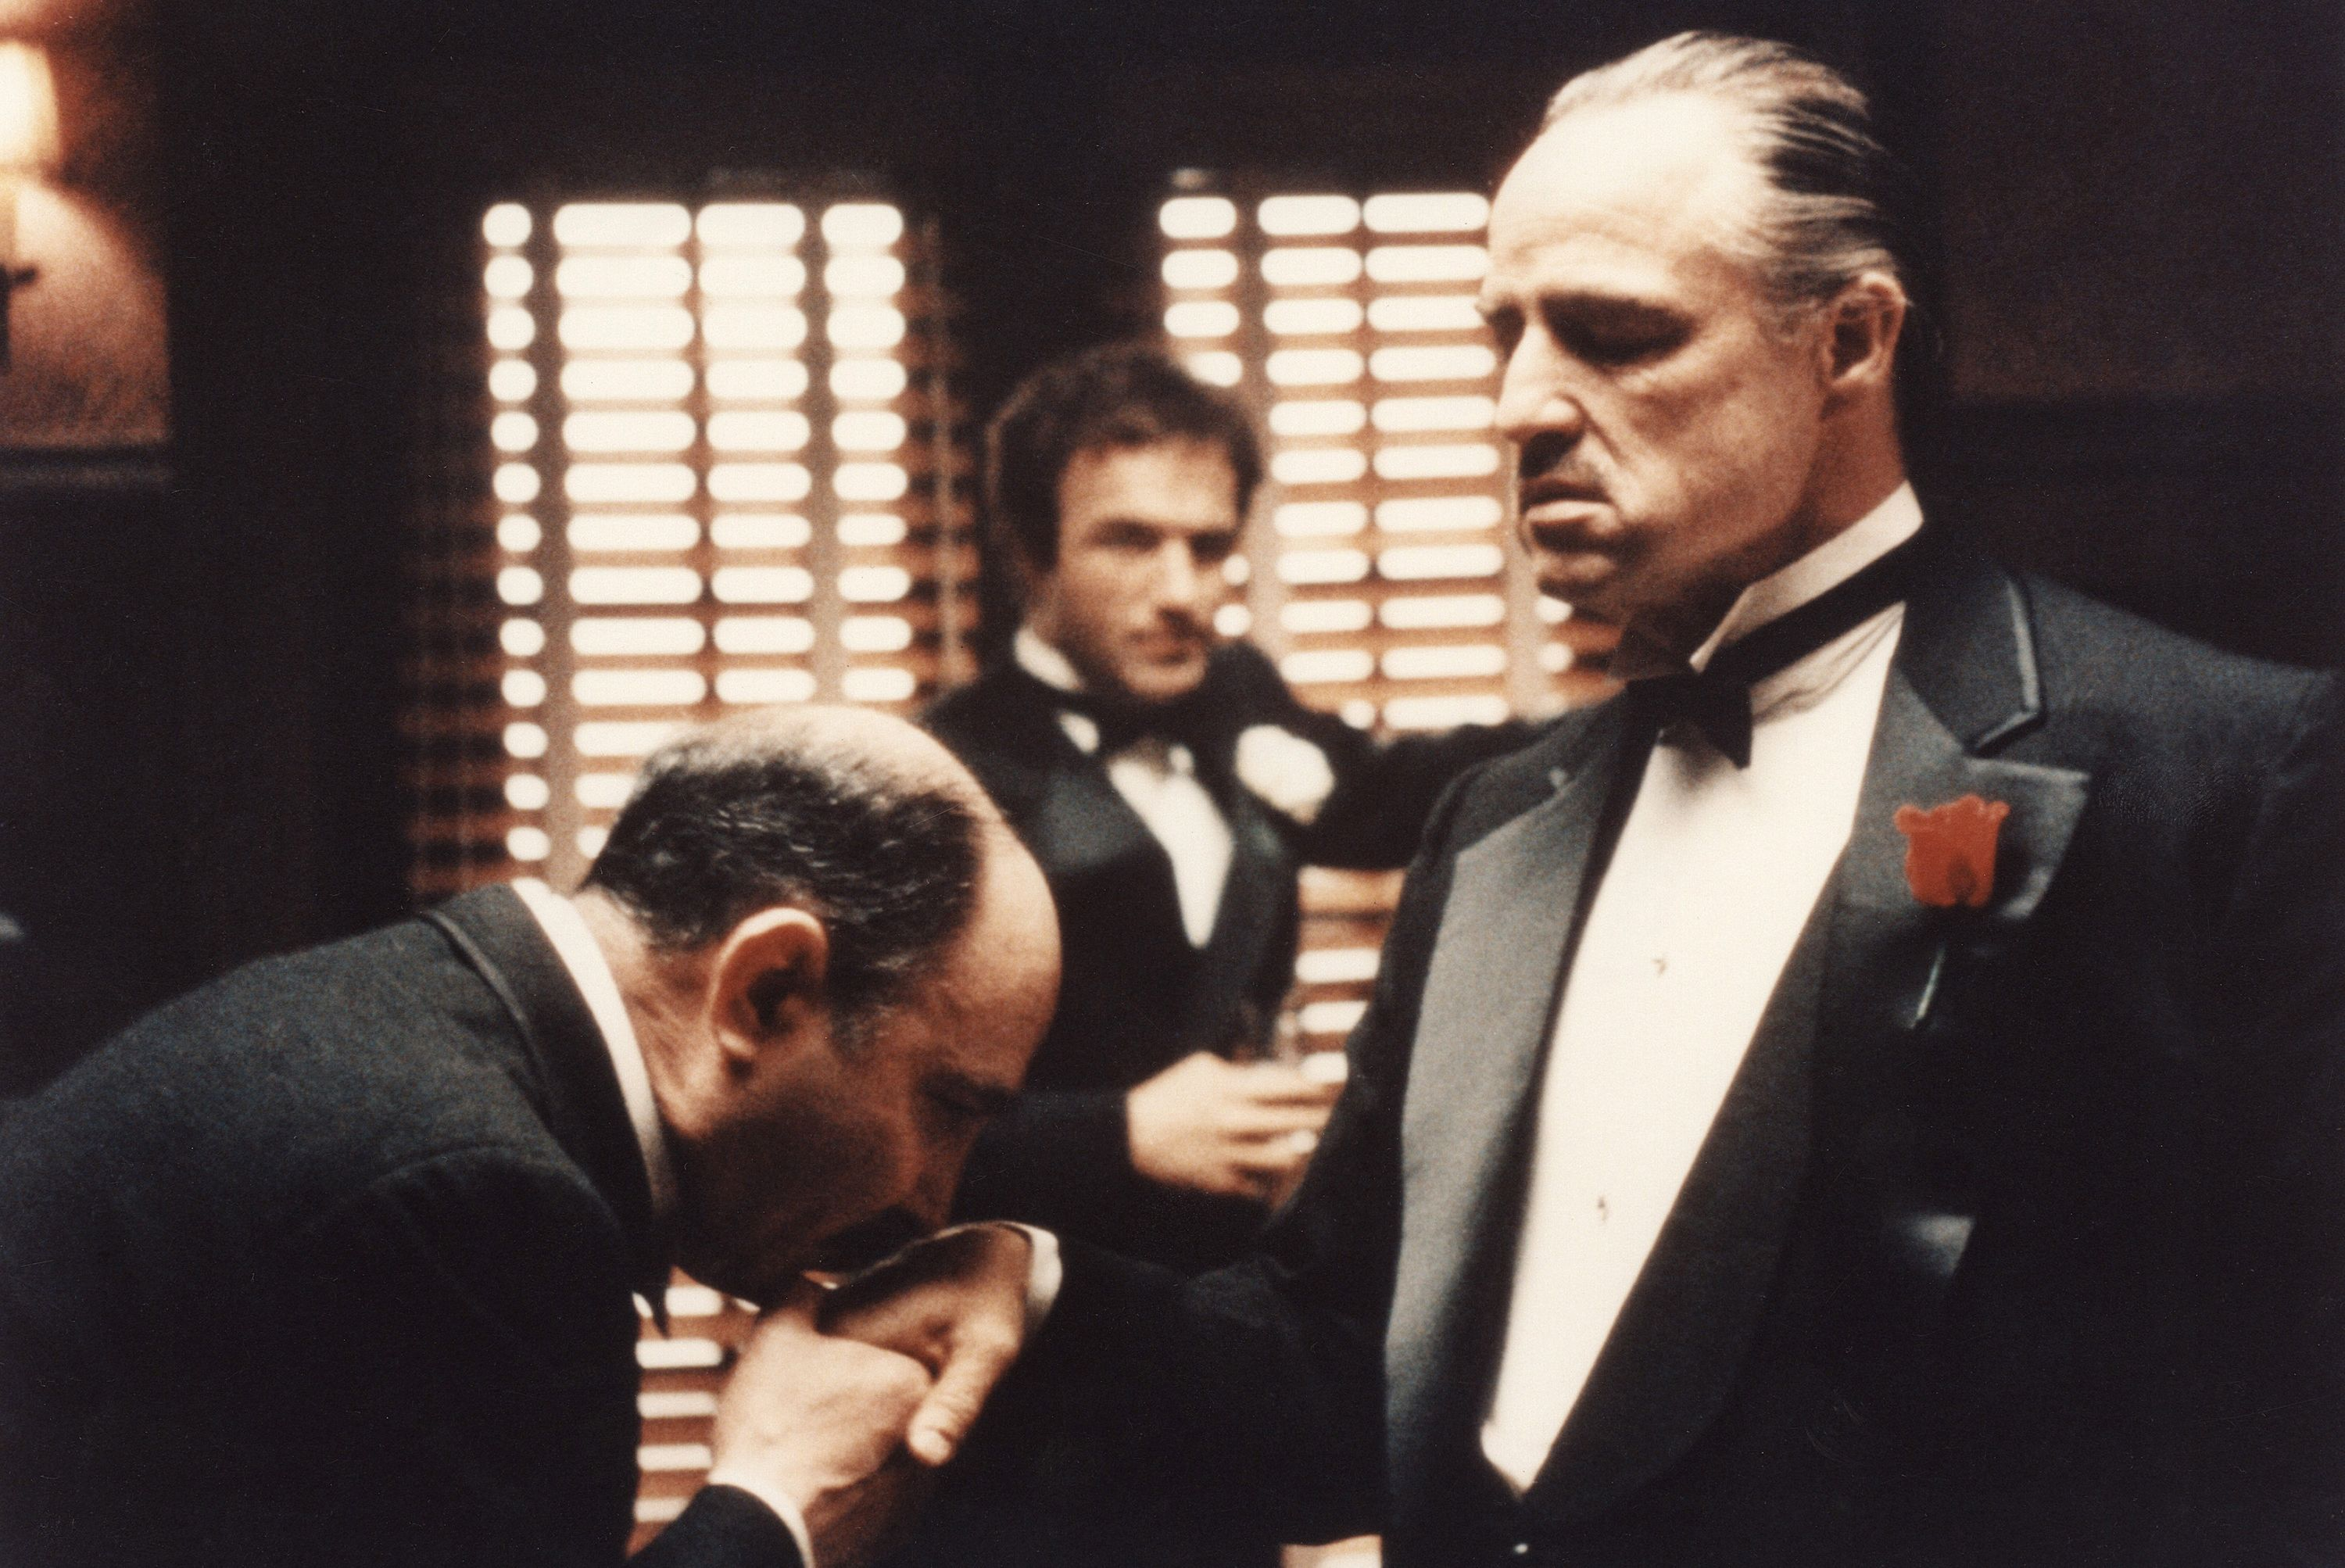 Watch Now The first film of Francis Ford Coppola's epic Mafia trilogy, adapted from Mario Puzo's book, launched Al Pacino and Robert DeNiro to superstardom, and brought us a whole new Marlon Brando as Don Corleone. The film that inspired a thousand marble-mouthed Brando impressions, it's the mob movie you can't refuse…